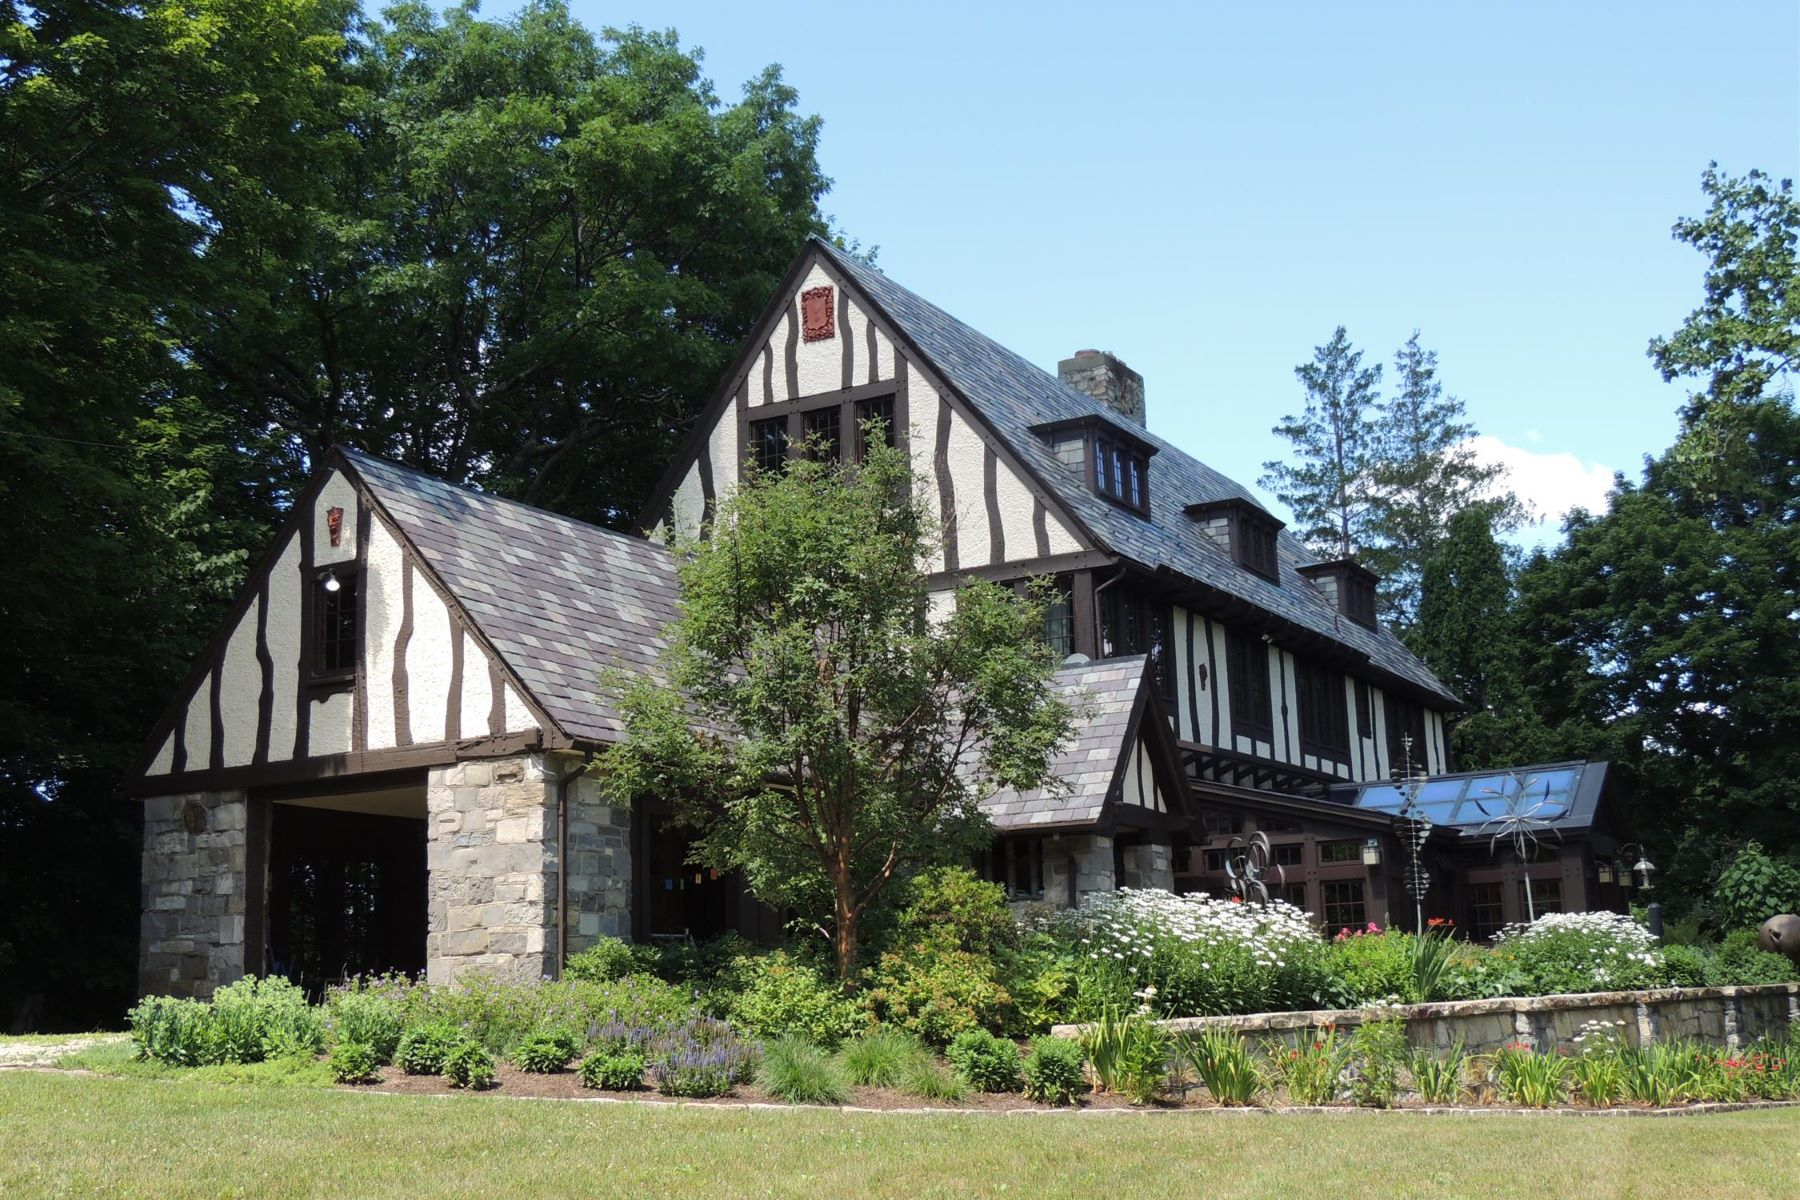 Single Family Homes for Active at Vintage Allure 26 Mansion Drive Copake, New York 12516 United States